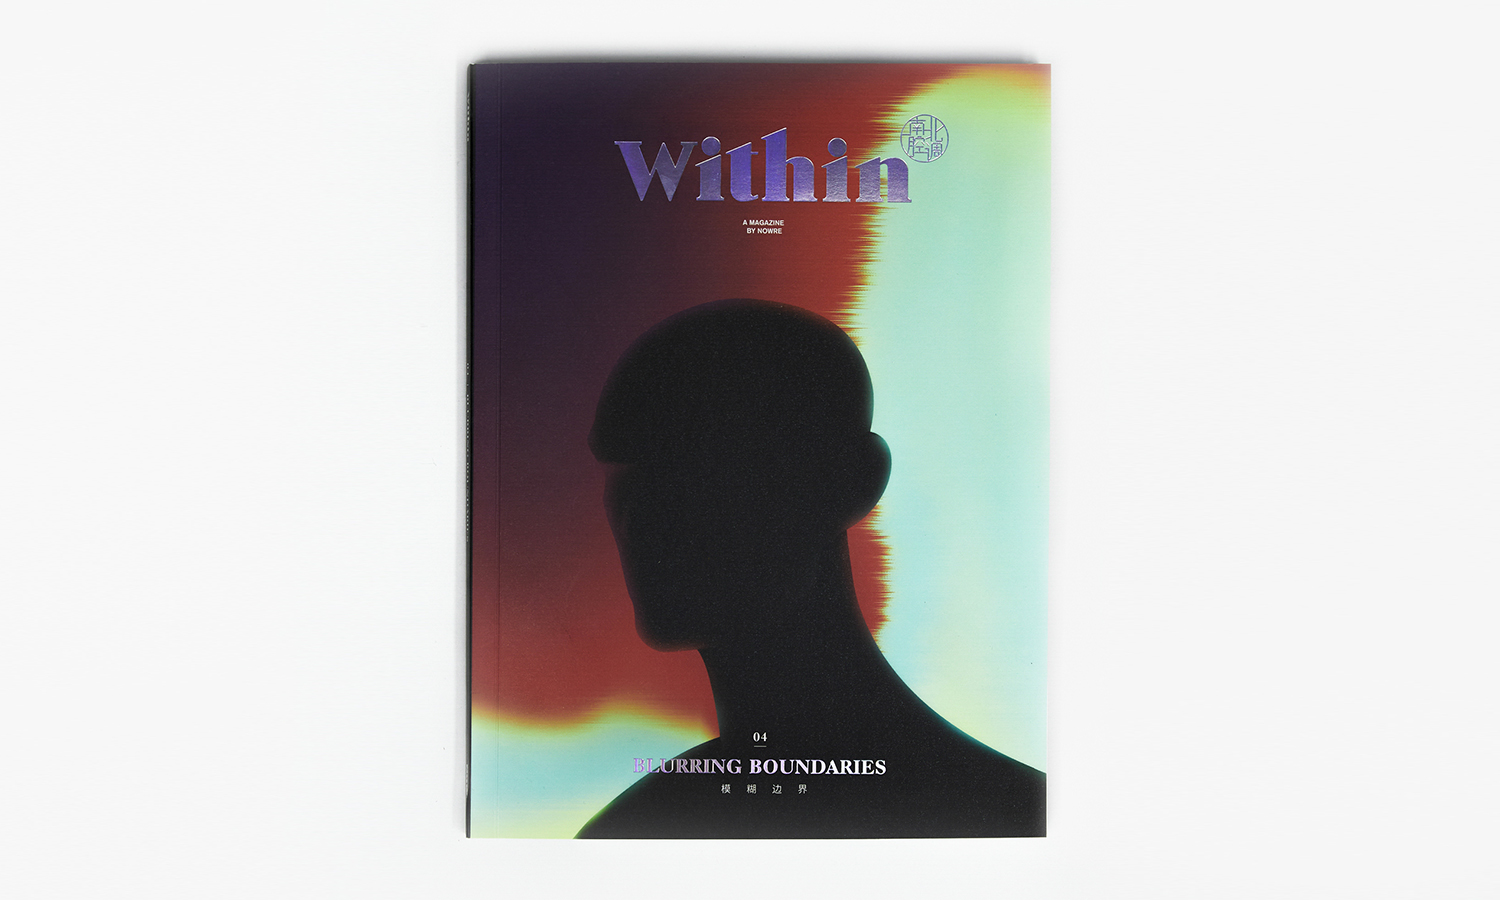 Within Issue 04 正式发售